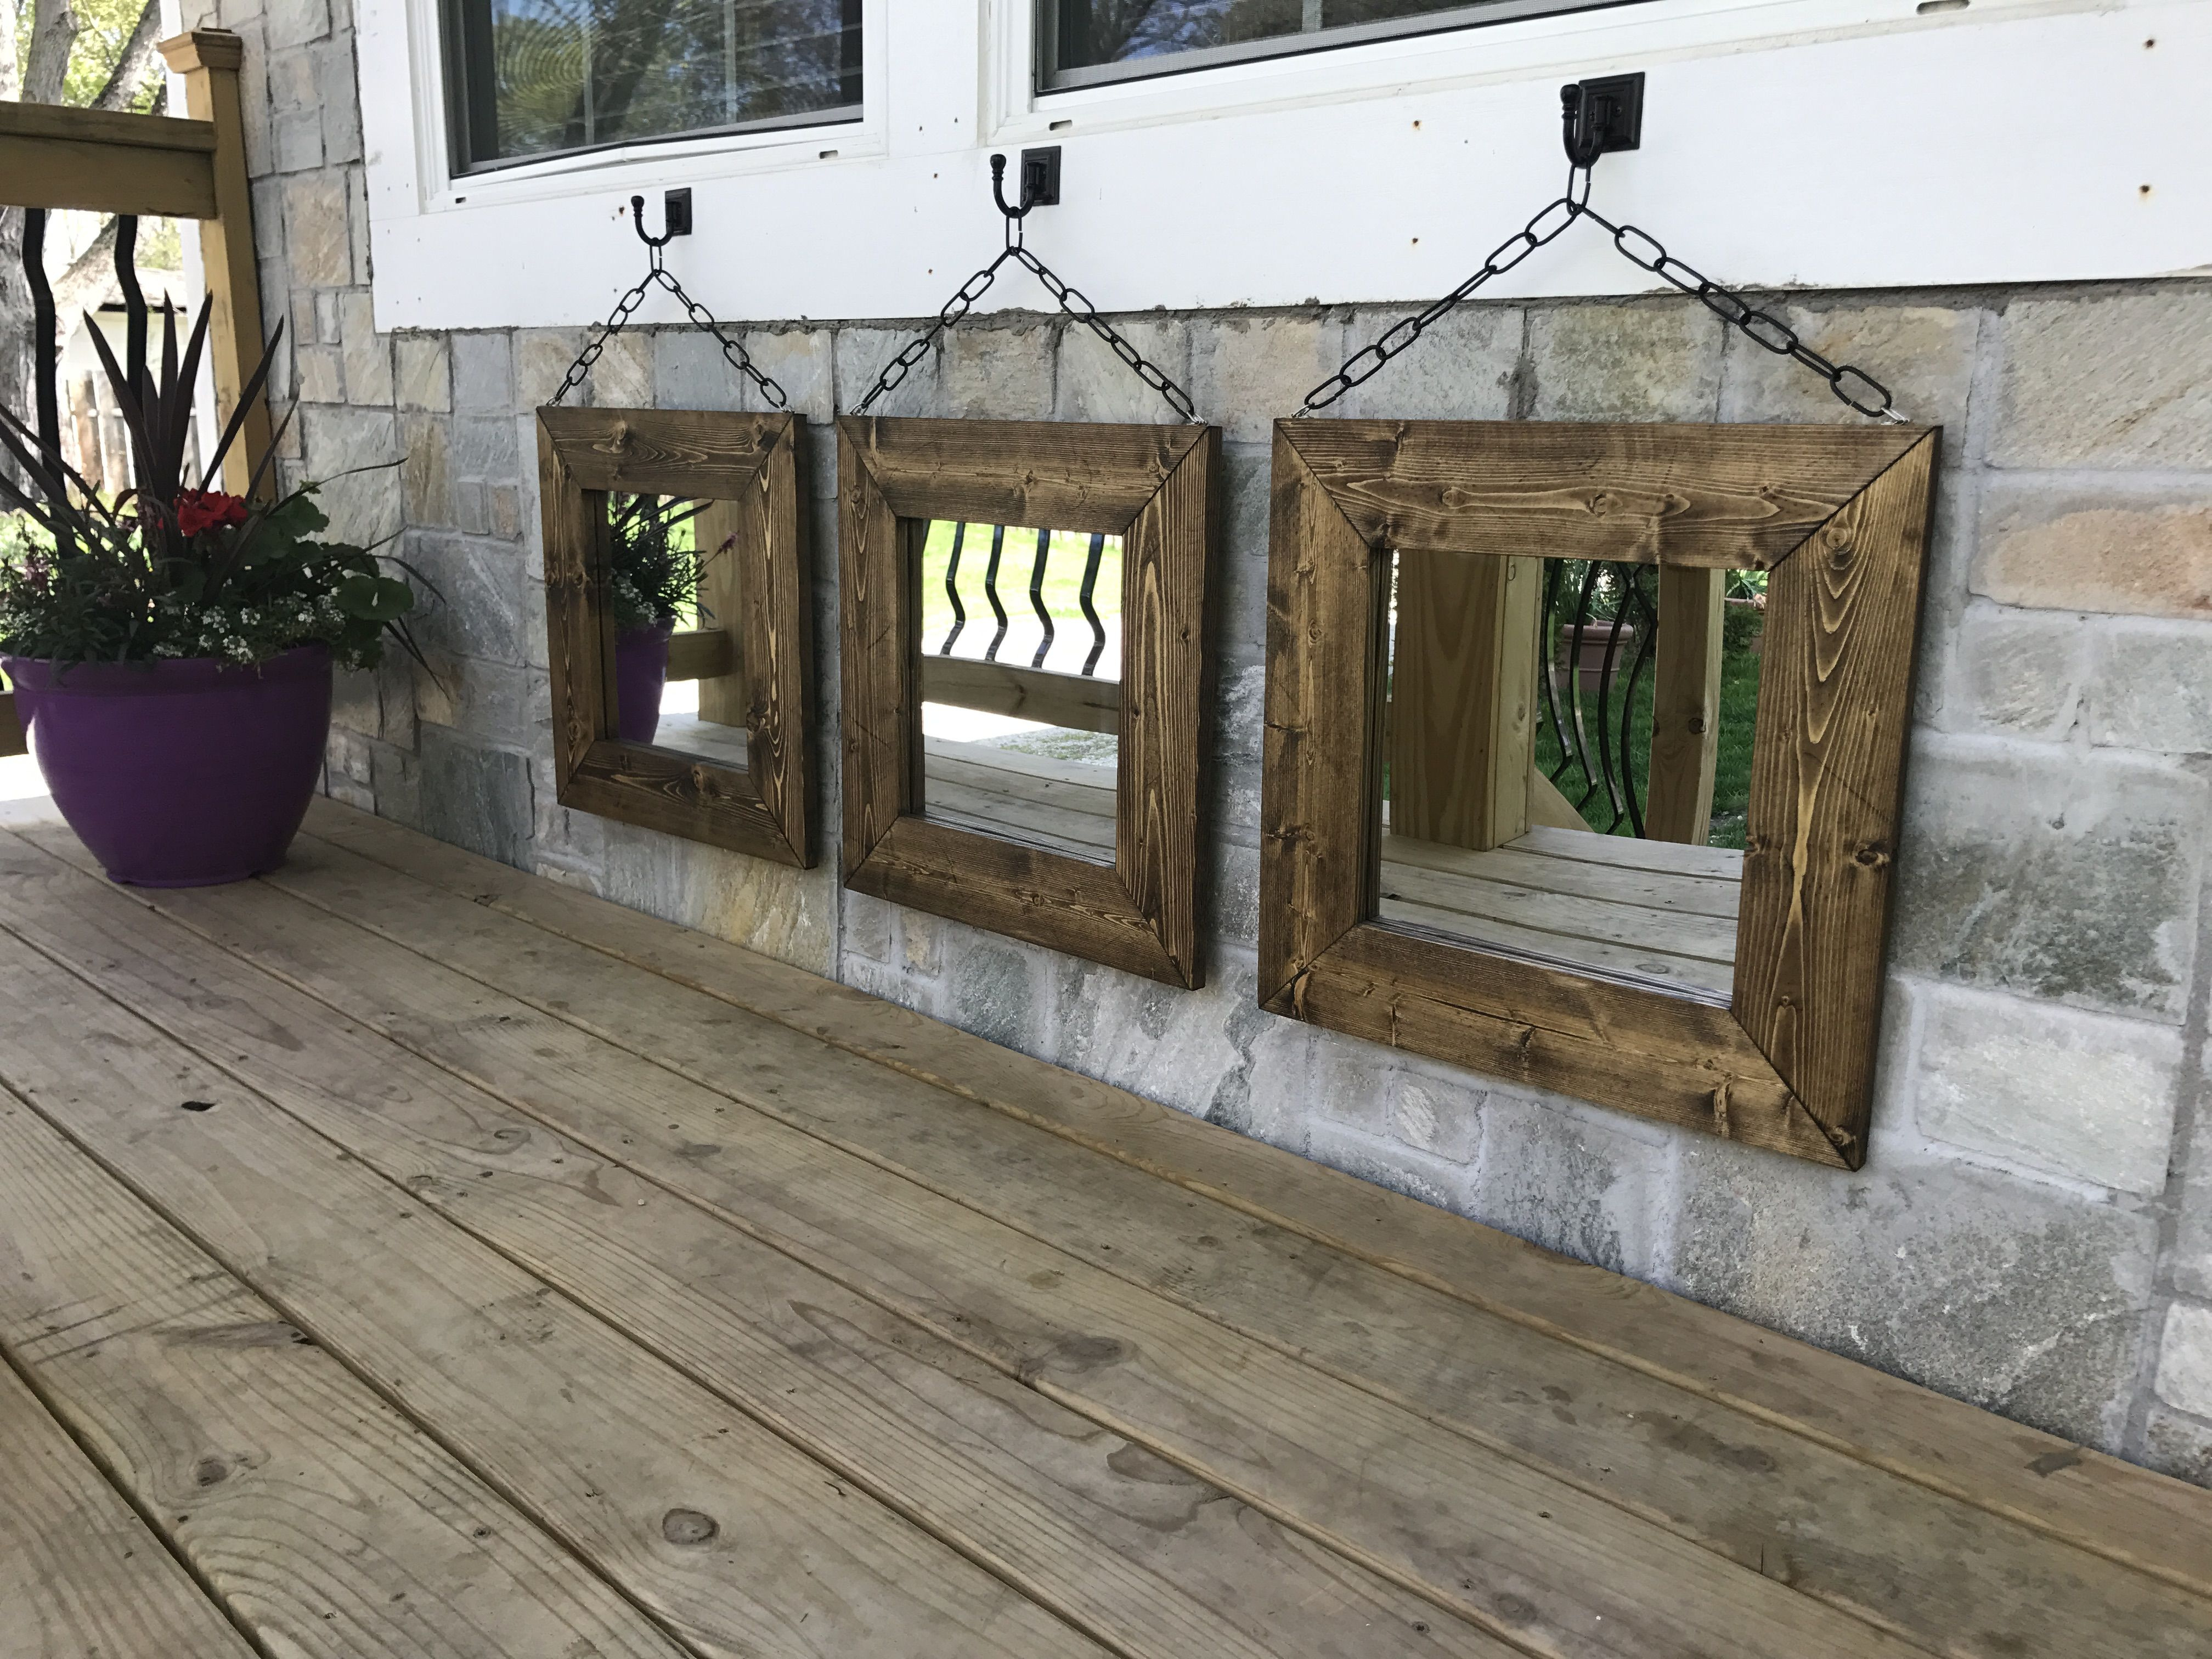 Small Decorative Wooden Mirrors Entryway Bathroom Bedroom Hallway Hallway Mirror Mirror Decor Mirror Wall Bedroom